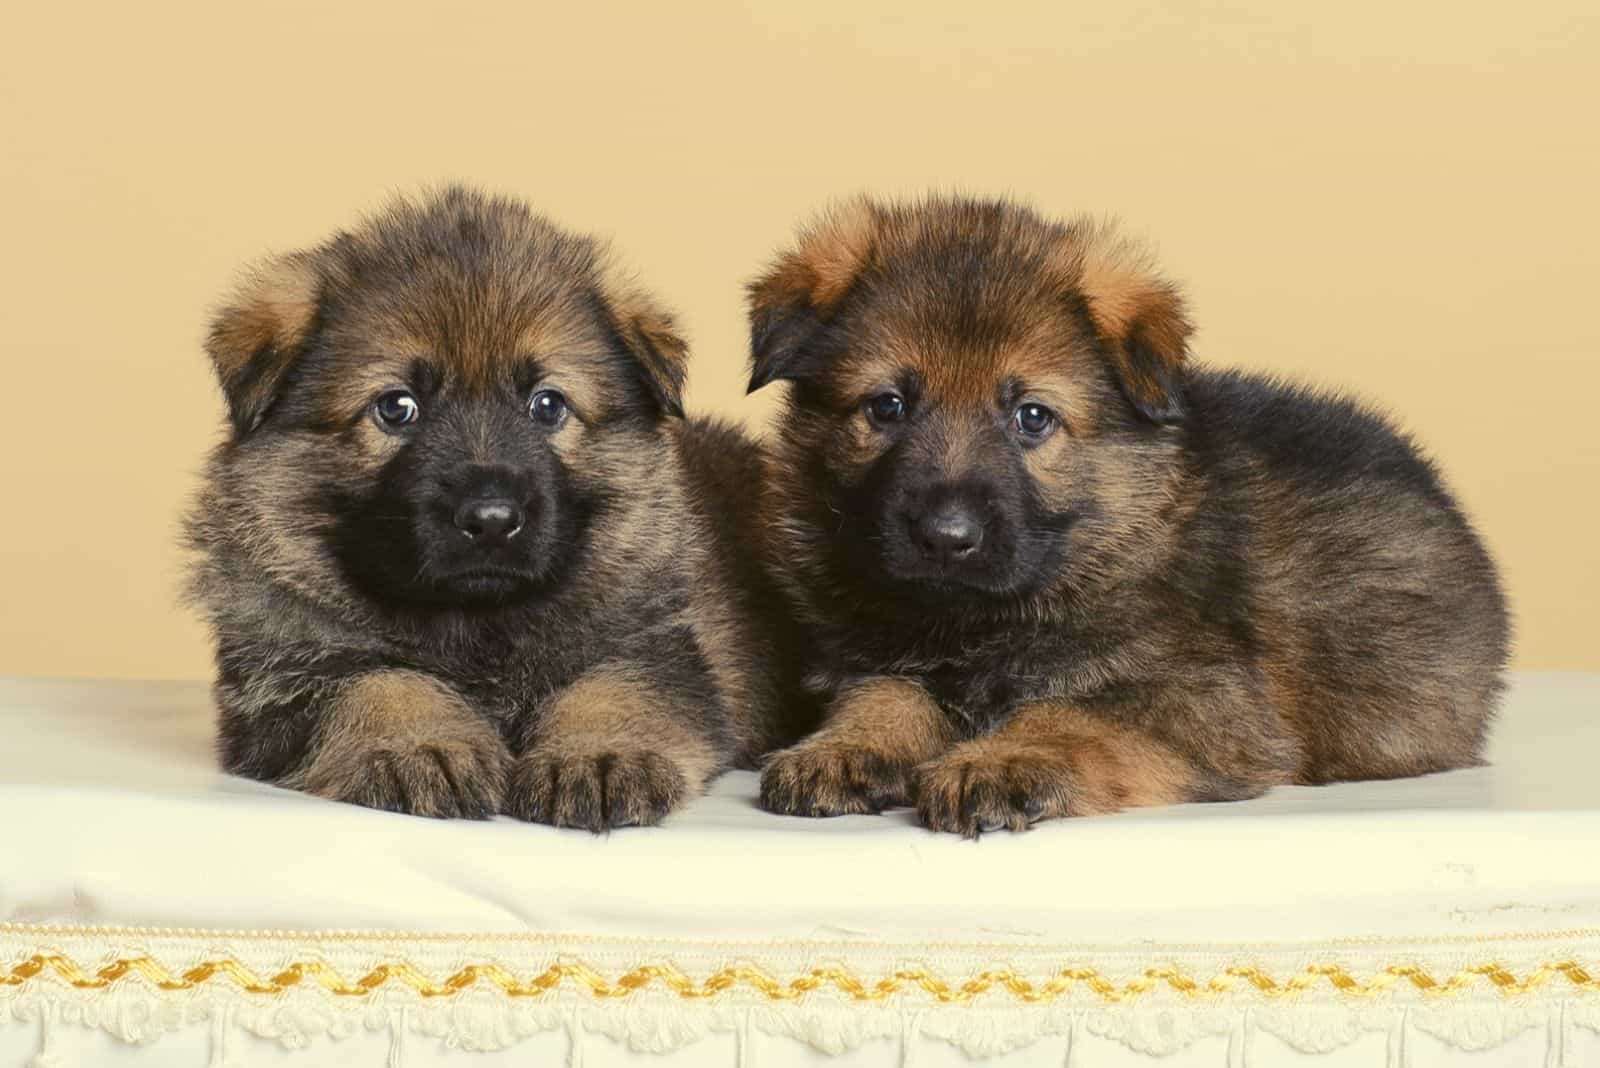 Two sable puppies german shepherd lying next to each other